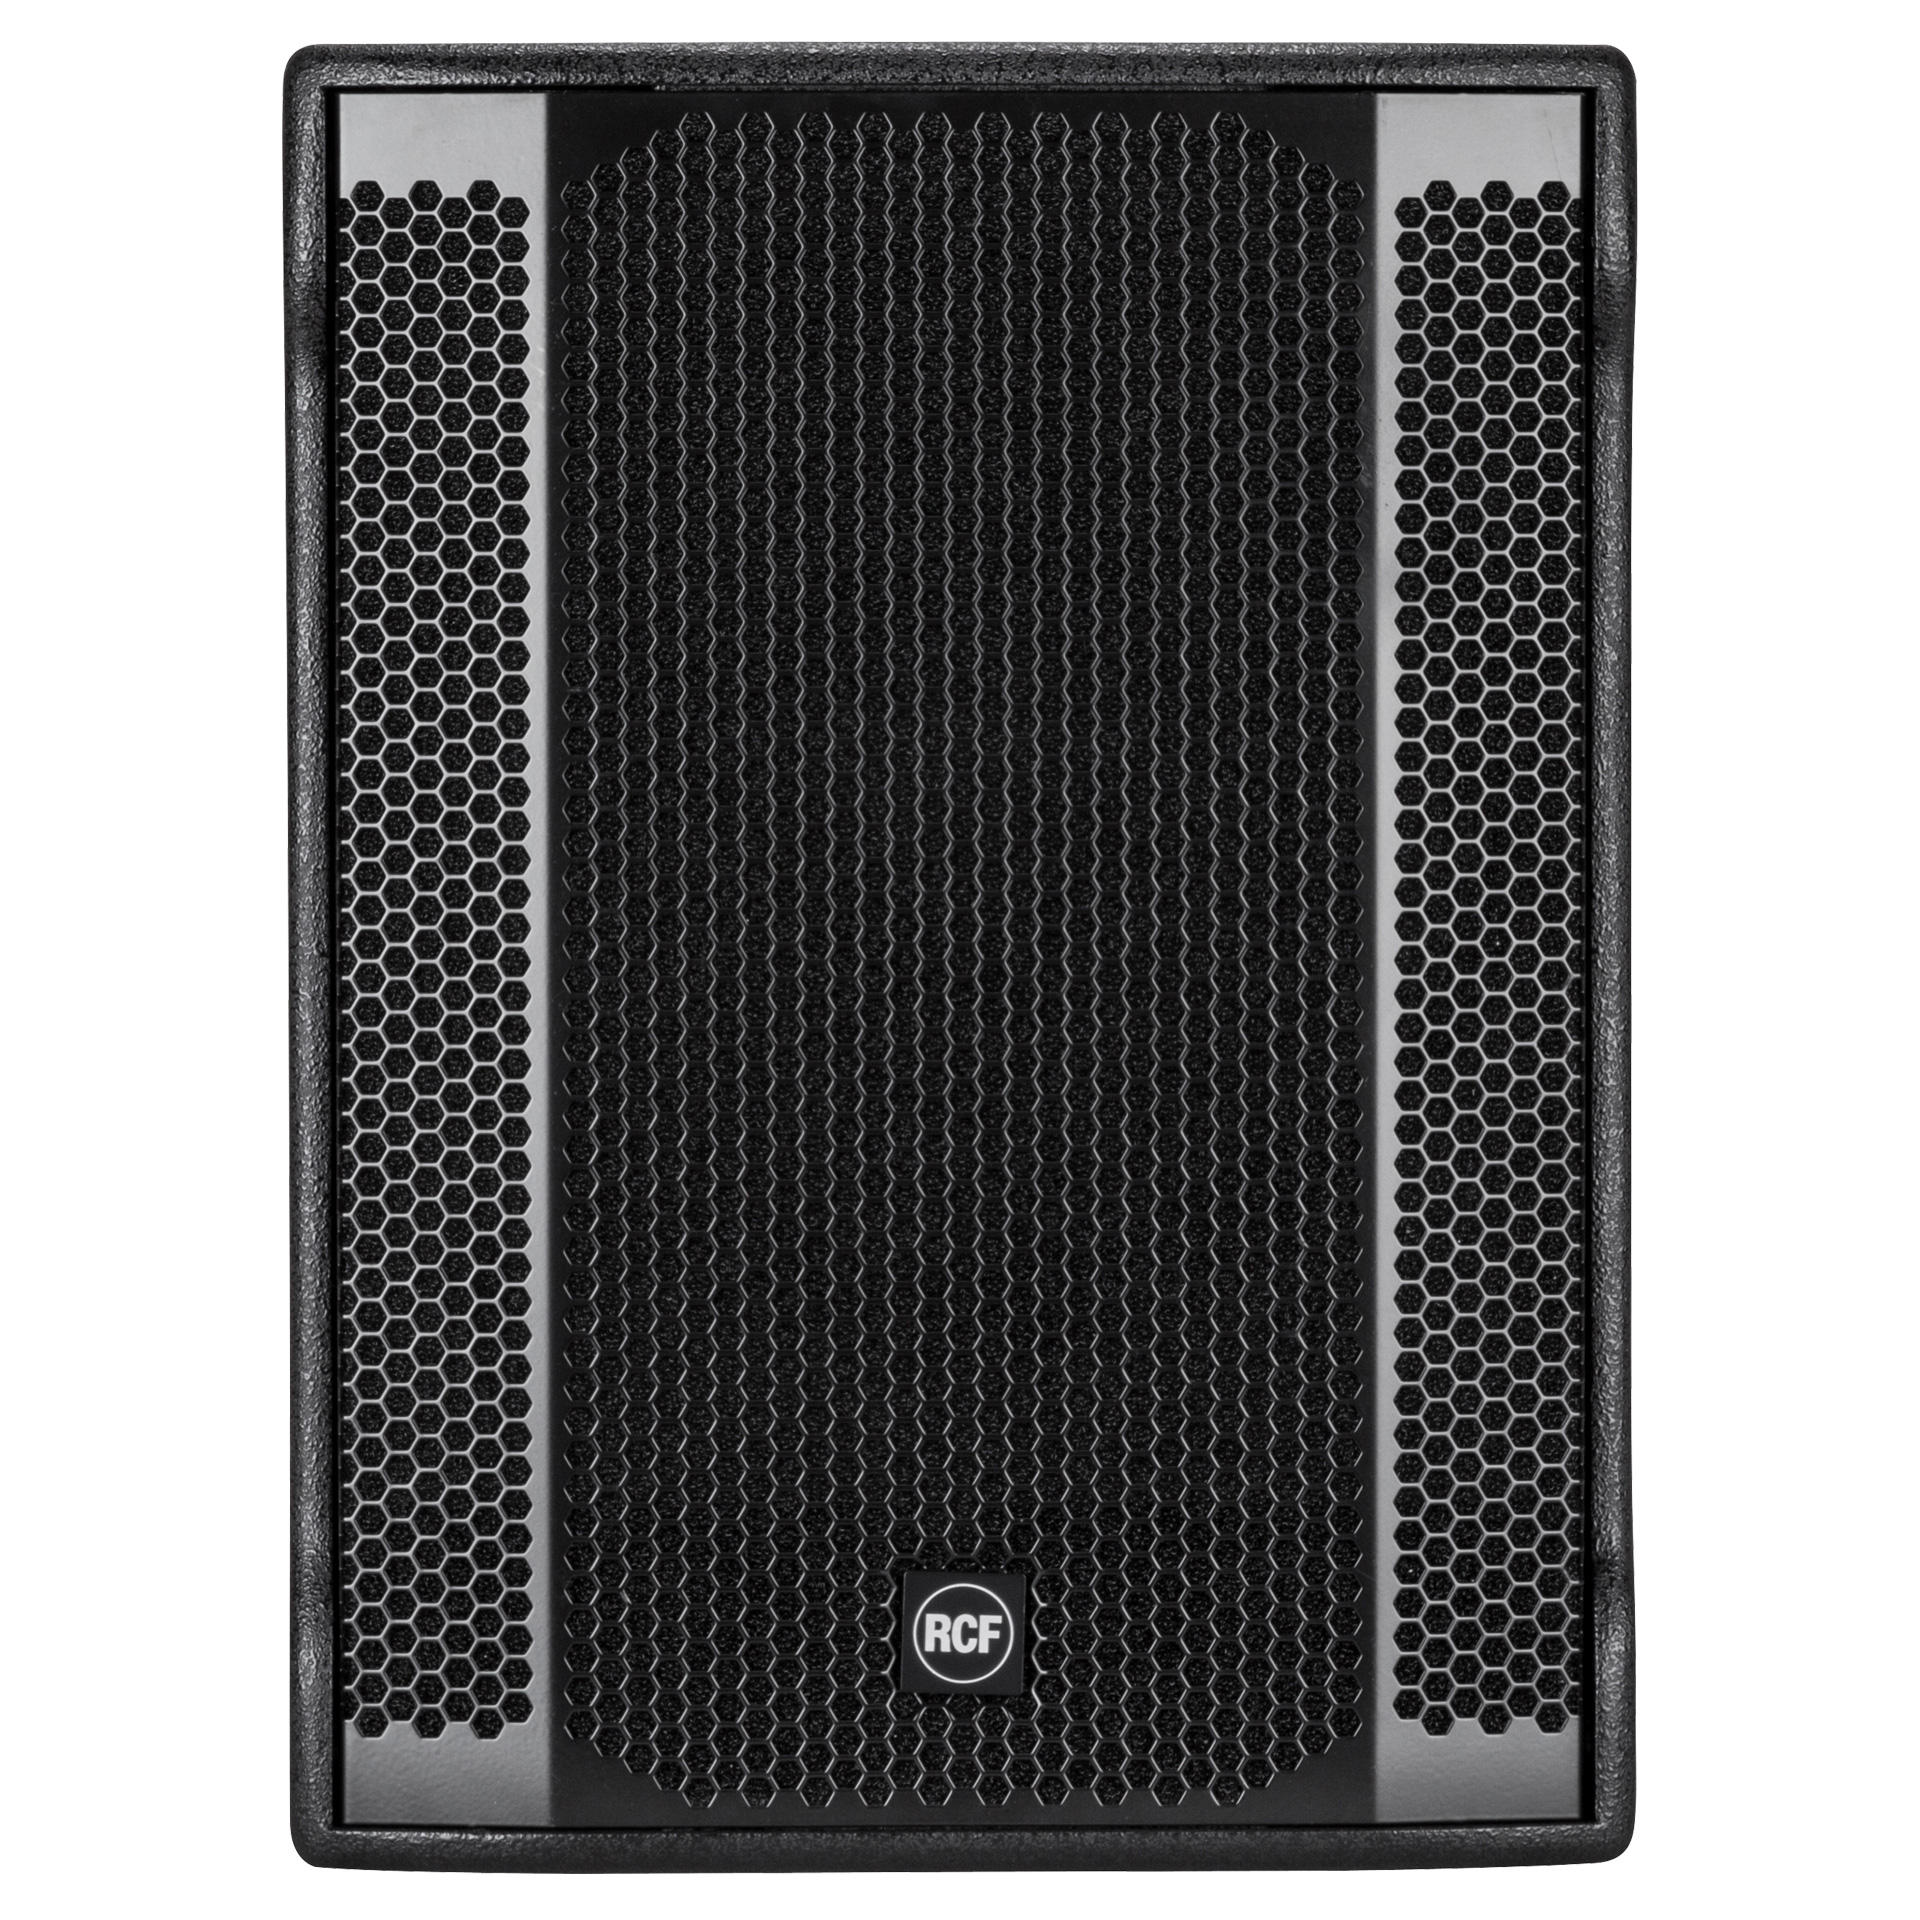 "RCF SUB 8003 AS II SUBWOOFER ATTIVO 18"" 2200W"